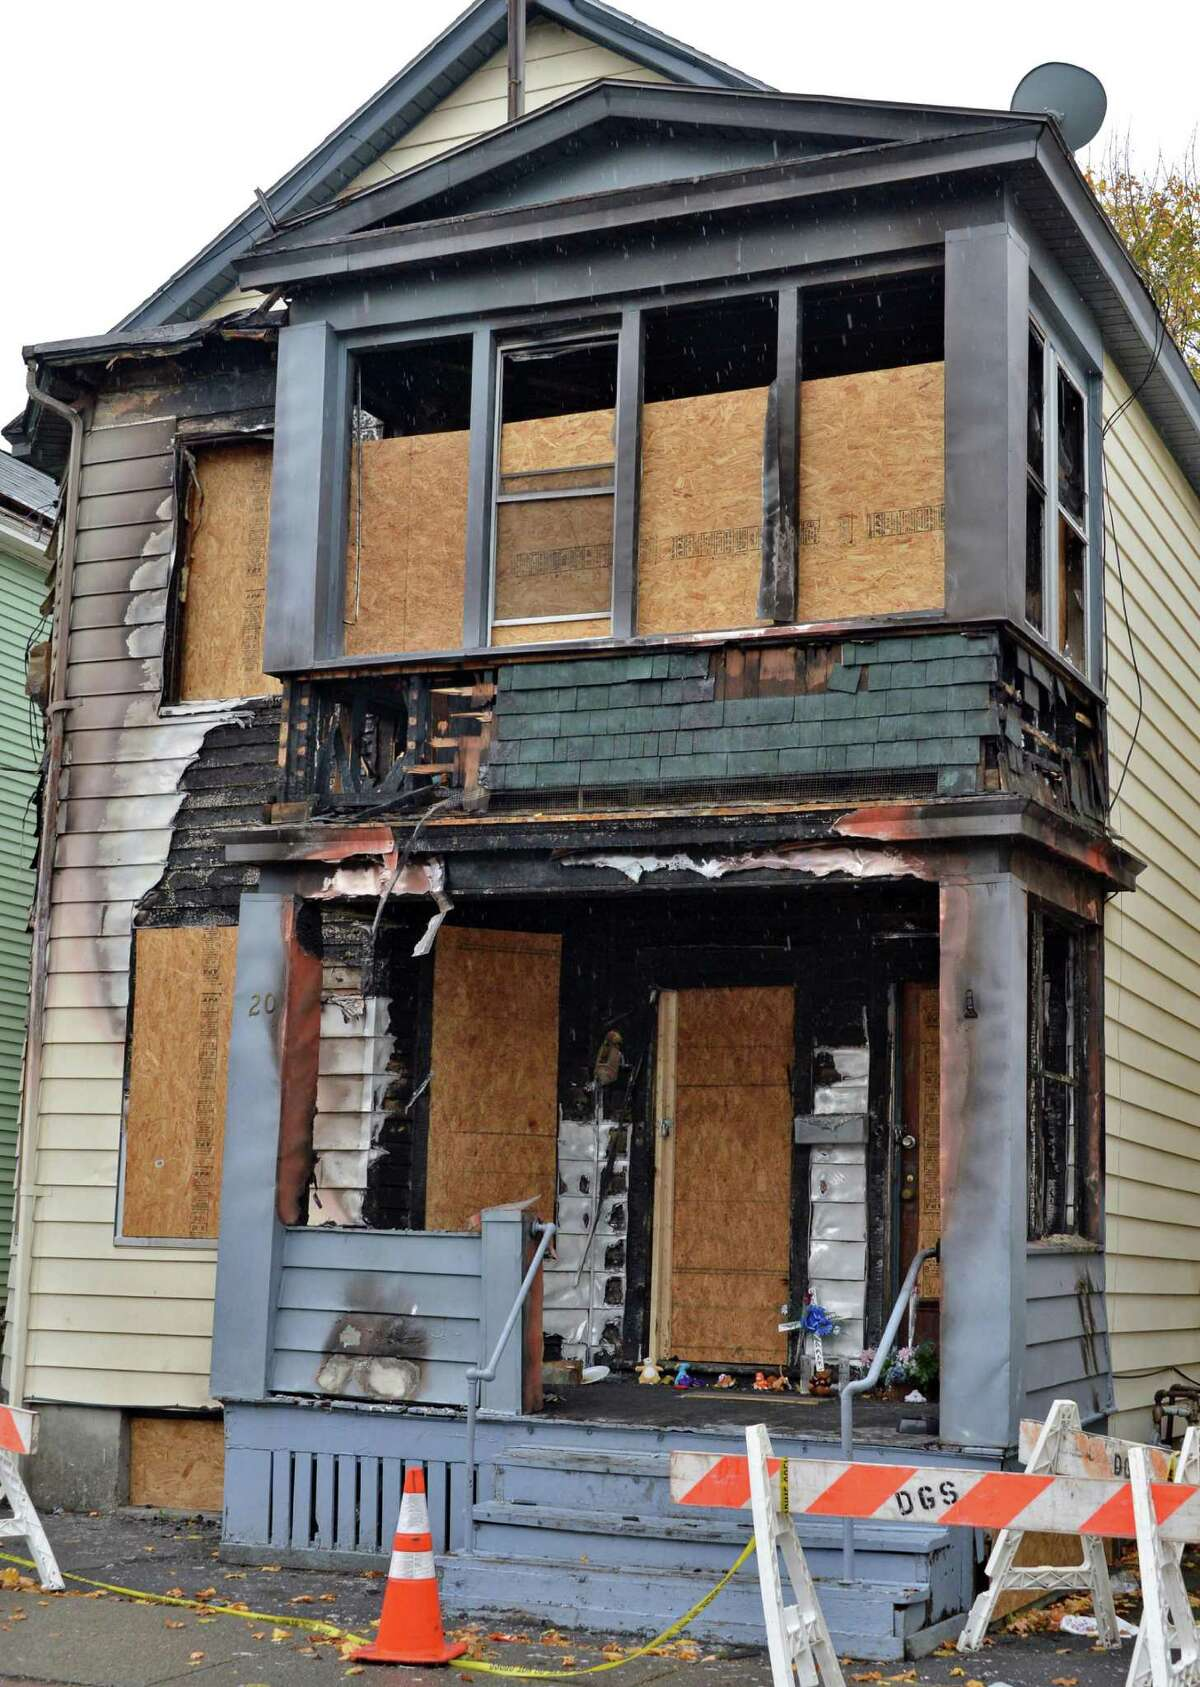 Fire damaged home at 20 Benson St. in Albany Thursday Nov. 1, 2012. (John Carl D'Annibale / Times Union)